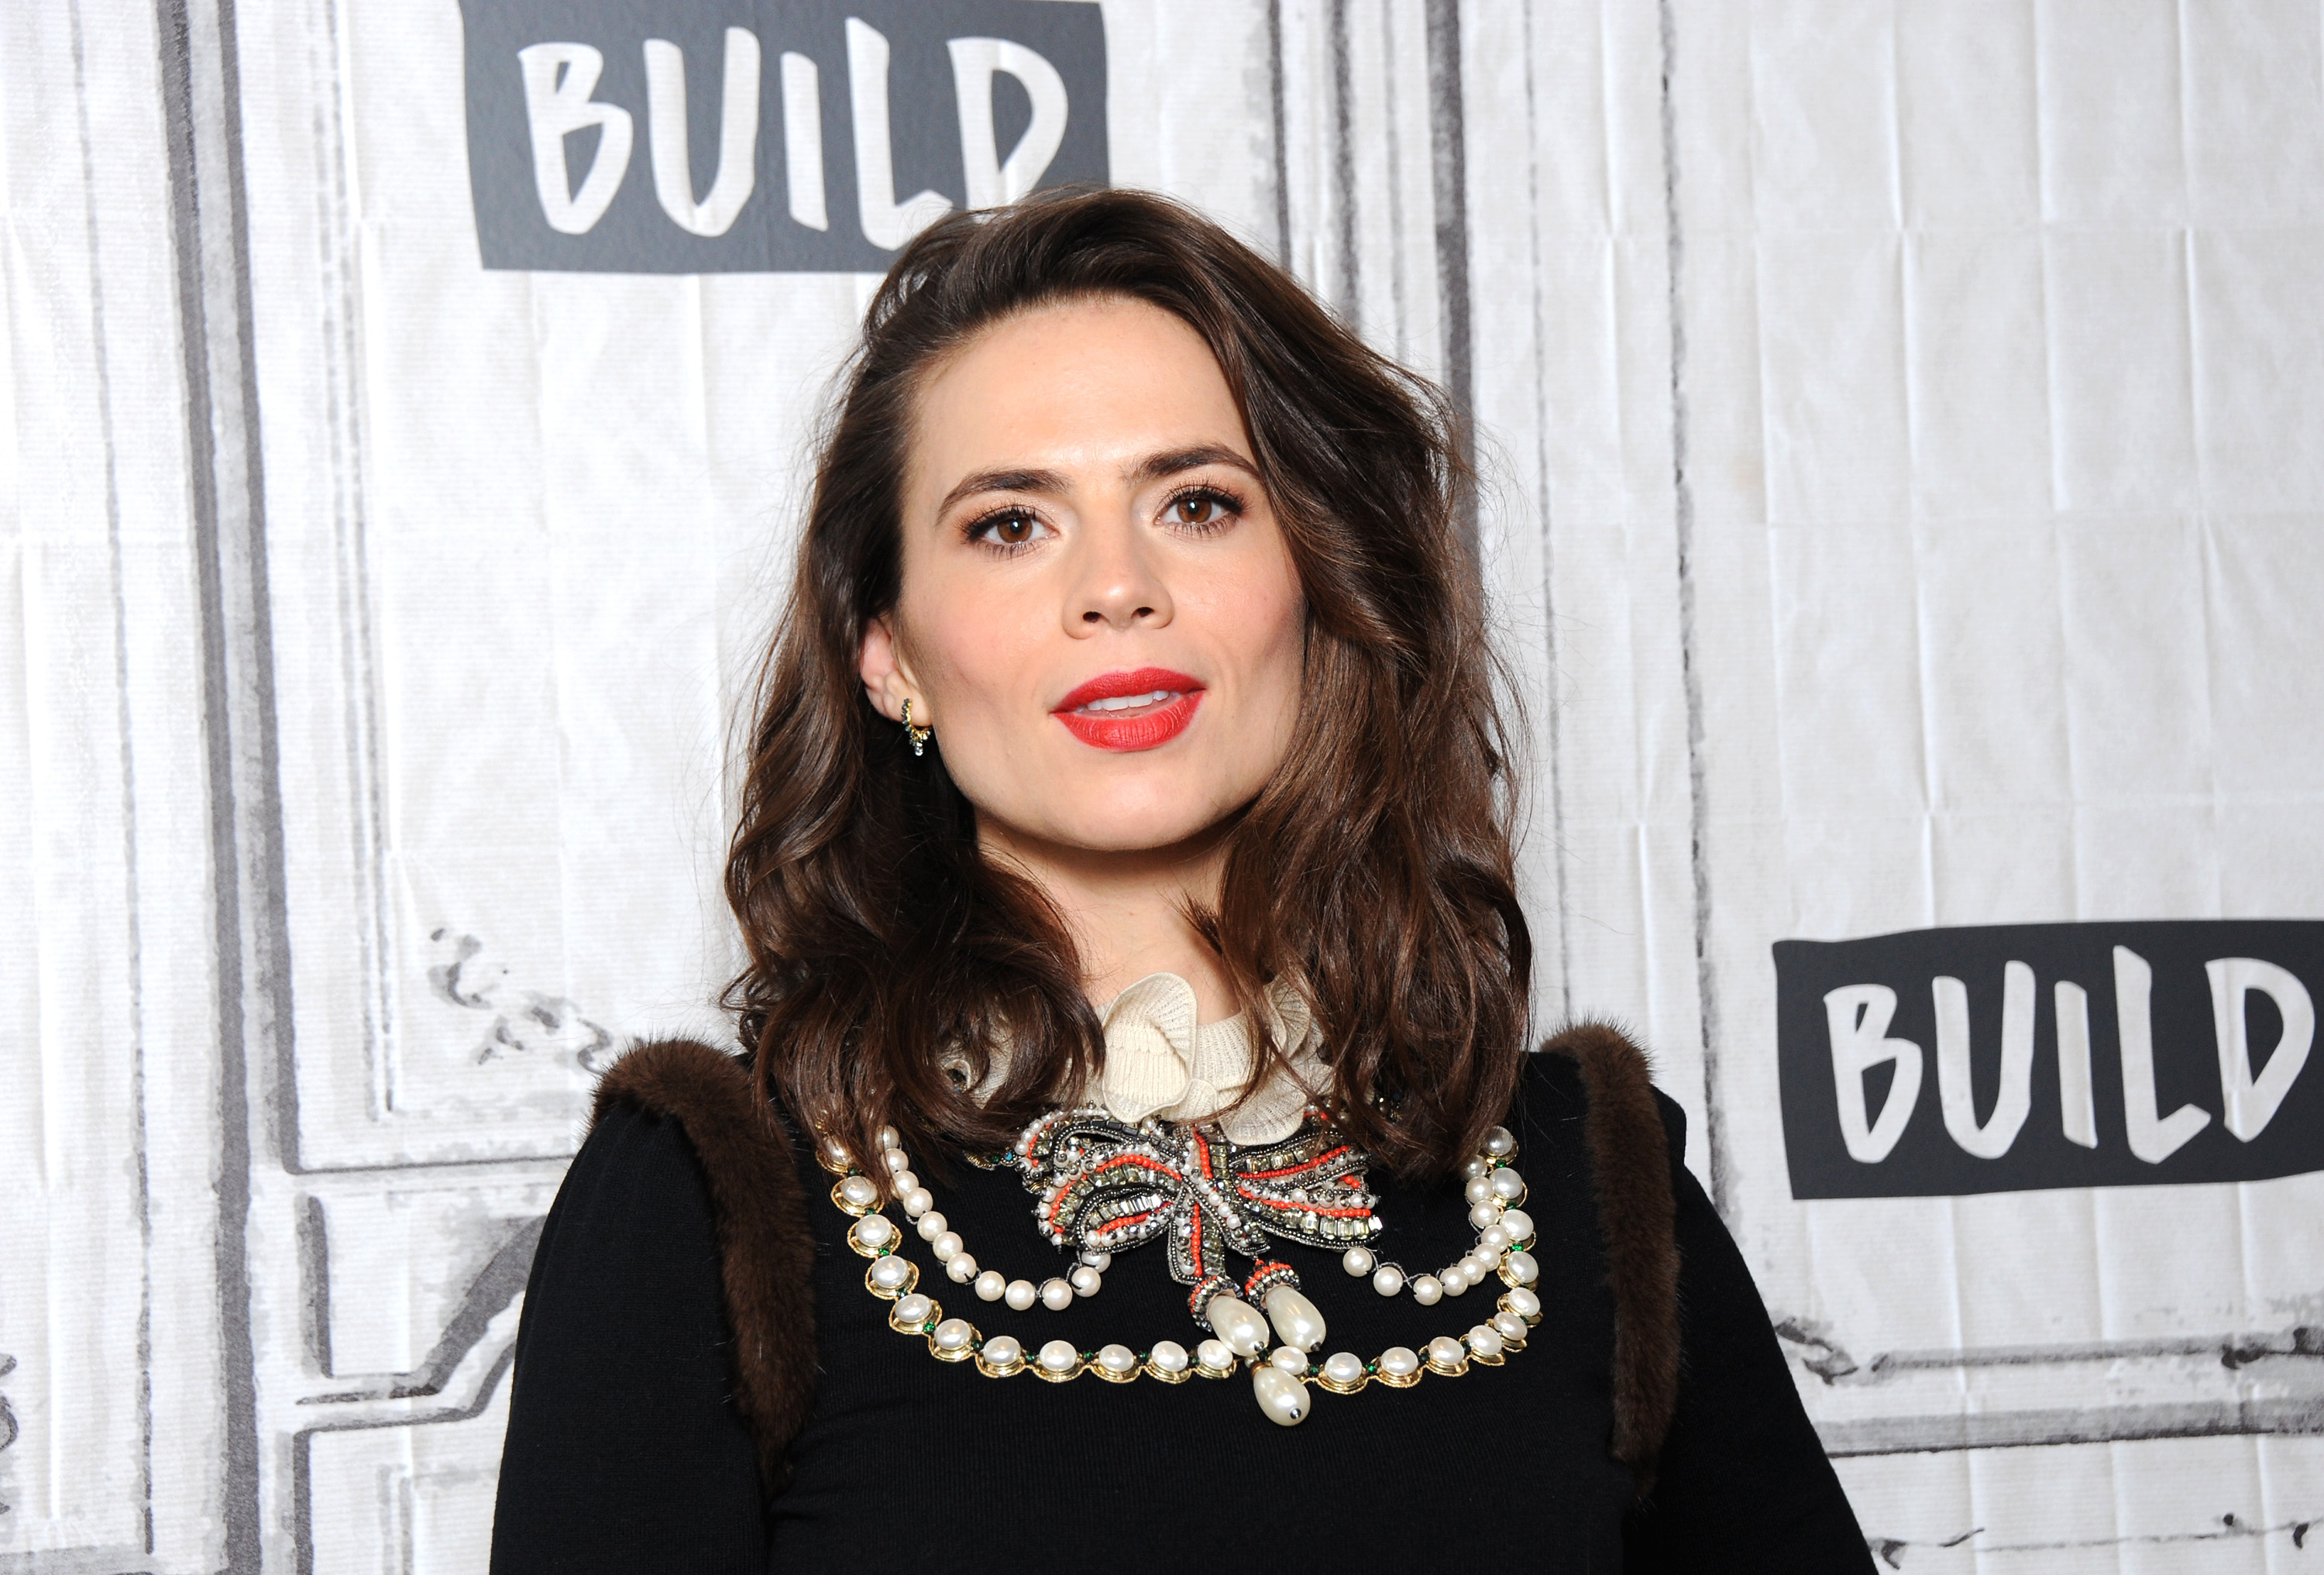 Captain America's Hayley Atwell 'target of nude leak as hackers threaten to release images'